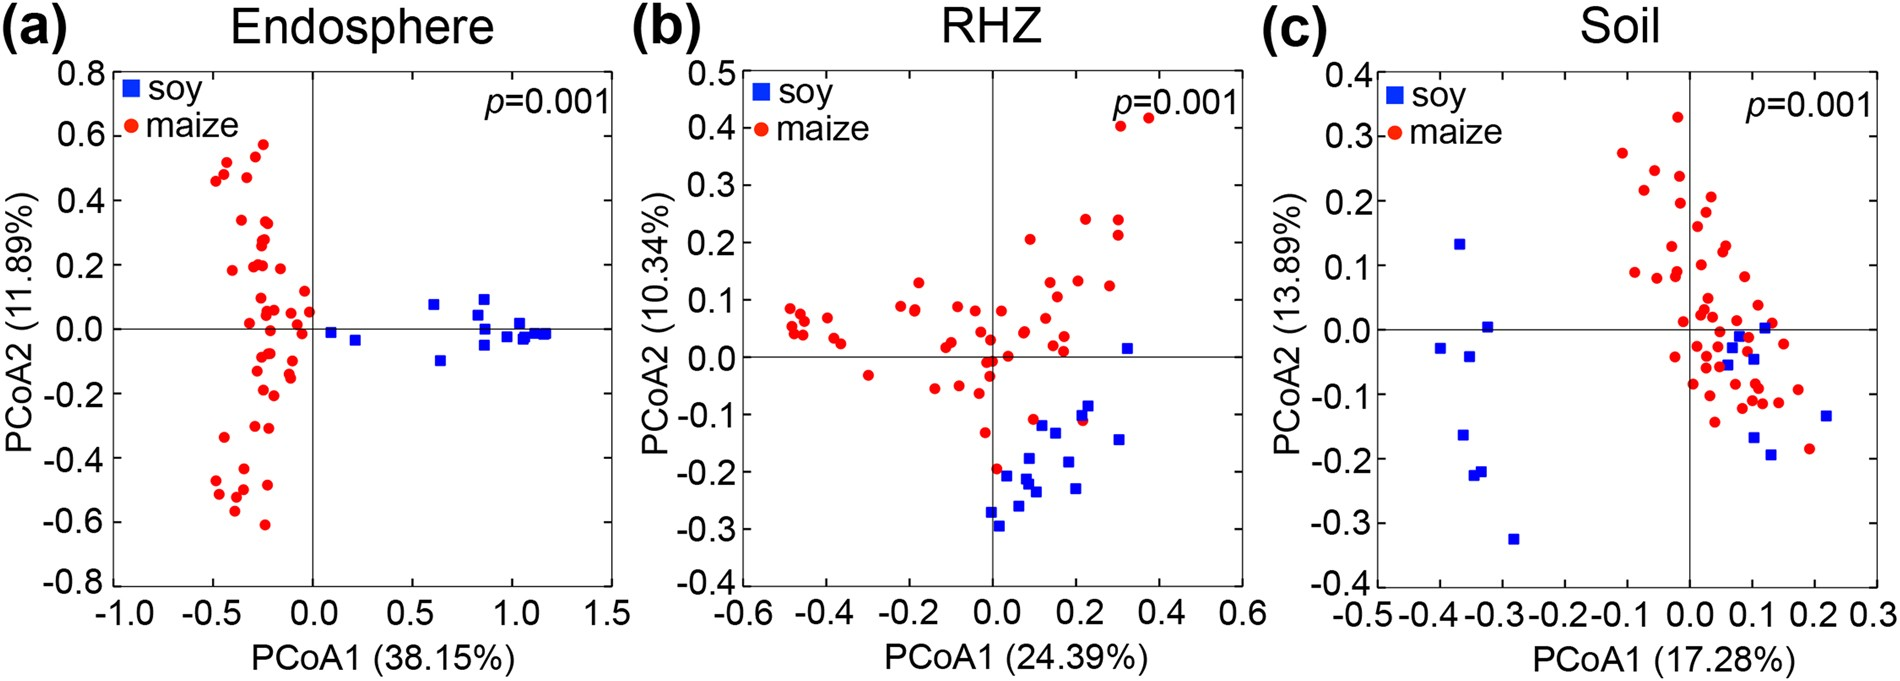 Shifts in microbial communities in soil, rhizosphere and roots of